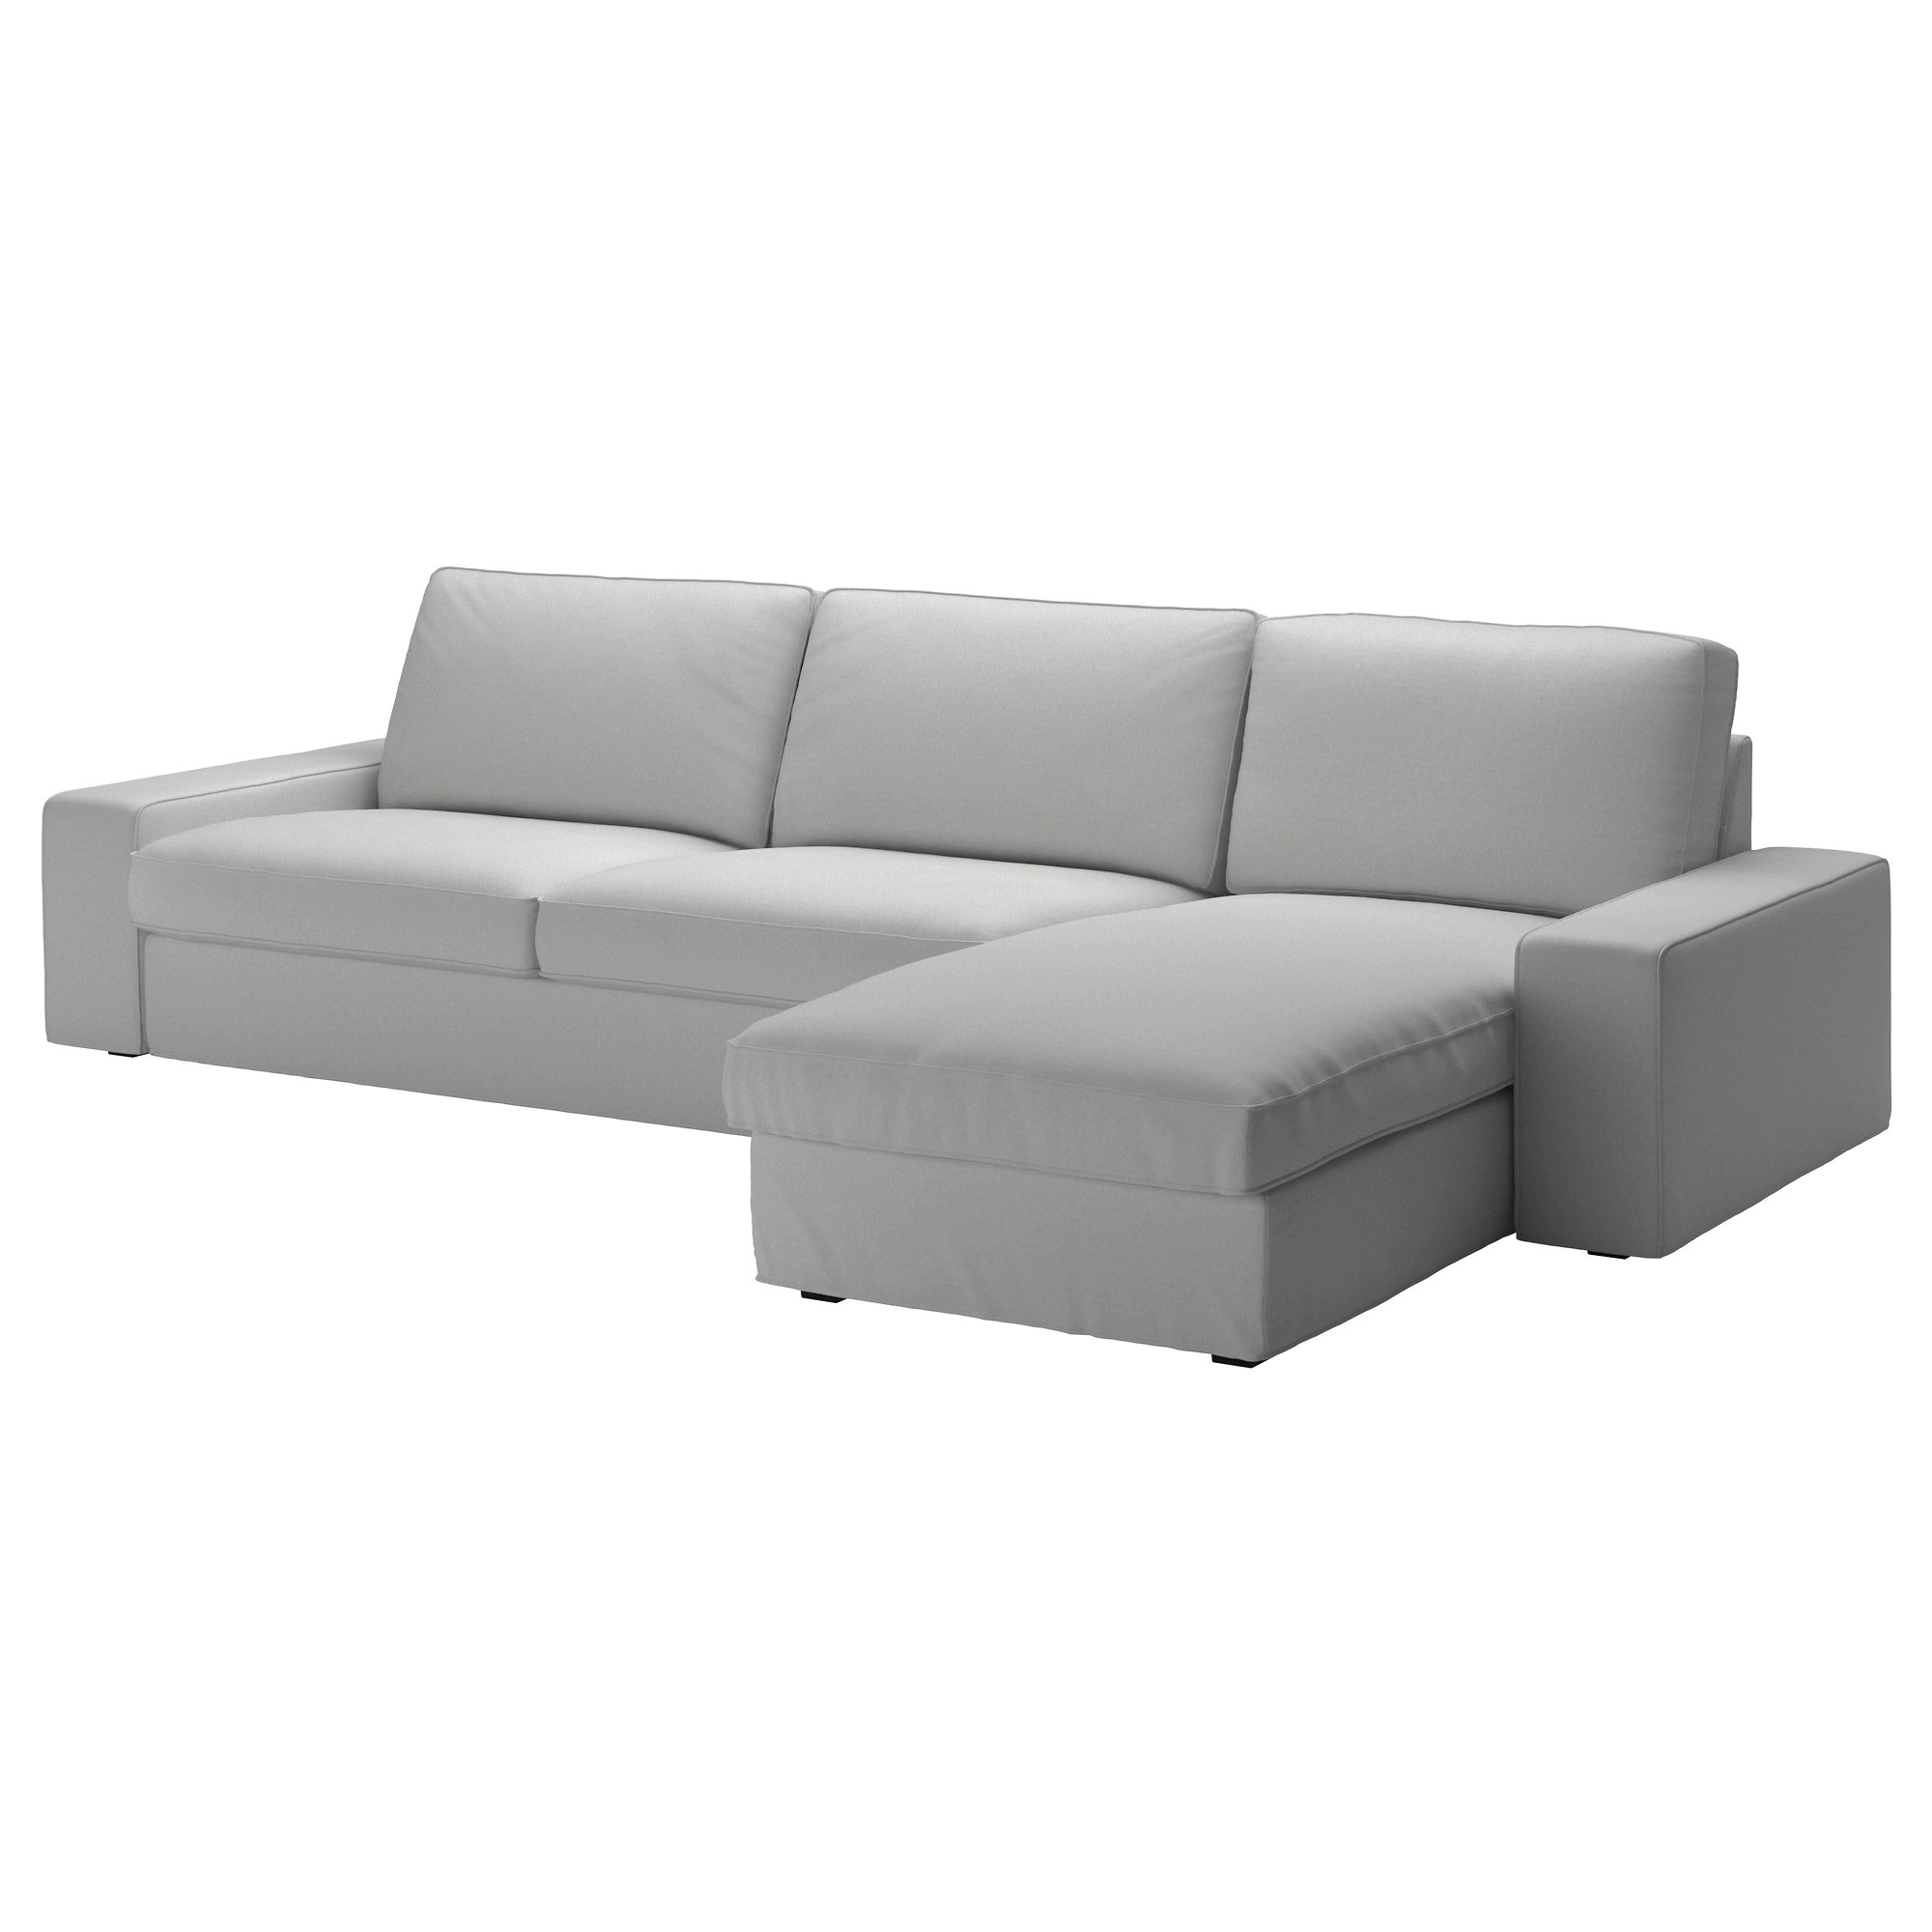 Chaise Grise Ikea Kivik Sectional 4 Seat Orrsta With Chaise Orrsta Light Gray